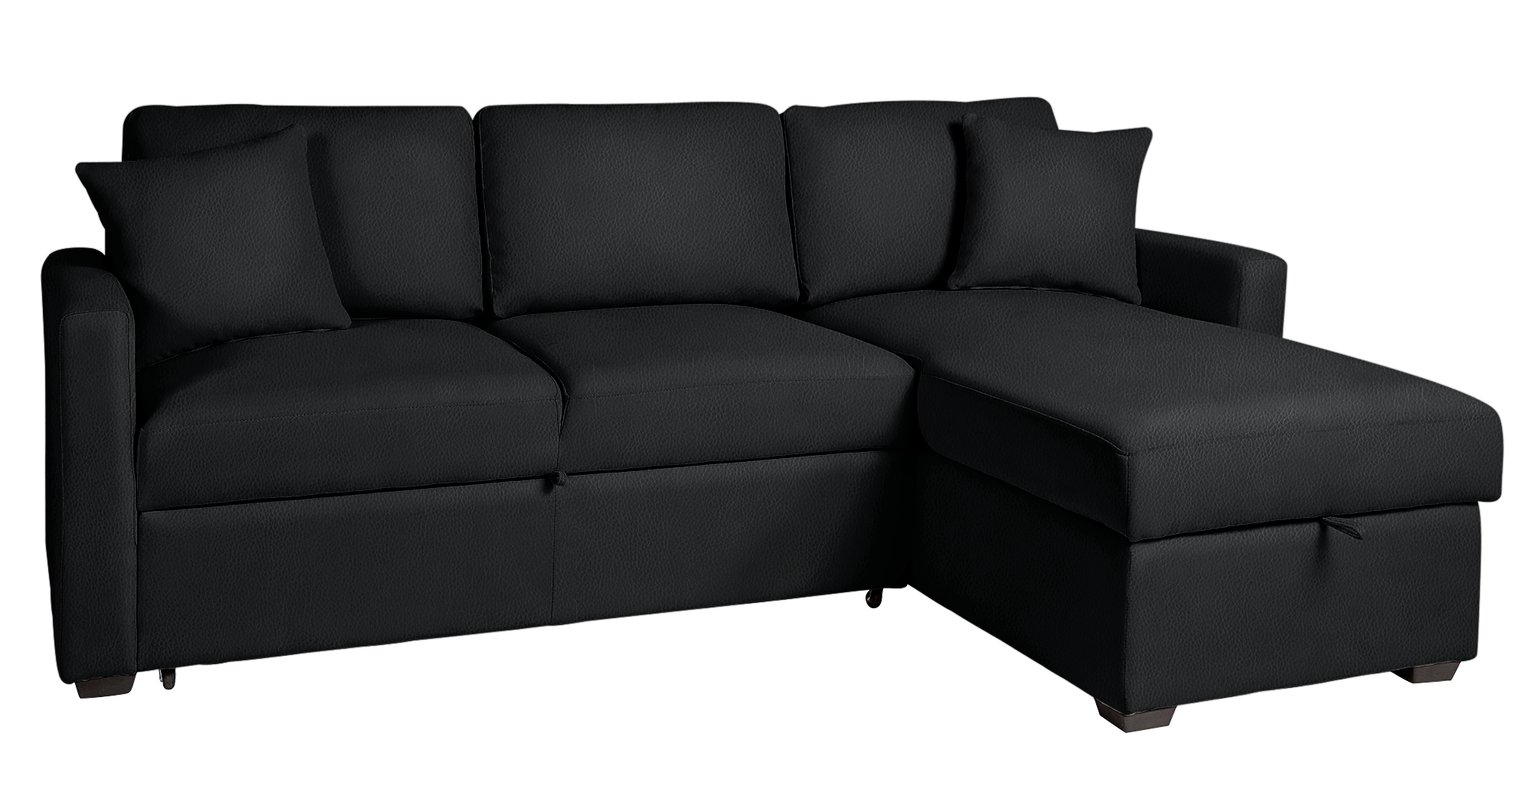 Argos Home - Reagan - Leather Eff Right Corner Chaise Sofa Bed - Blk from Argos Home